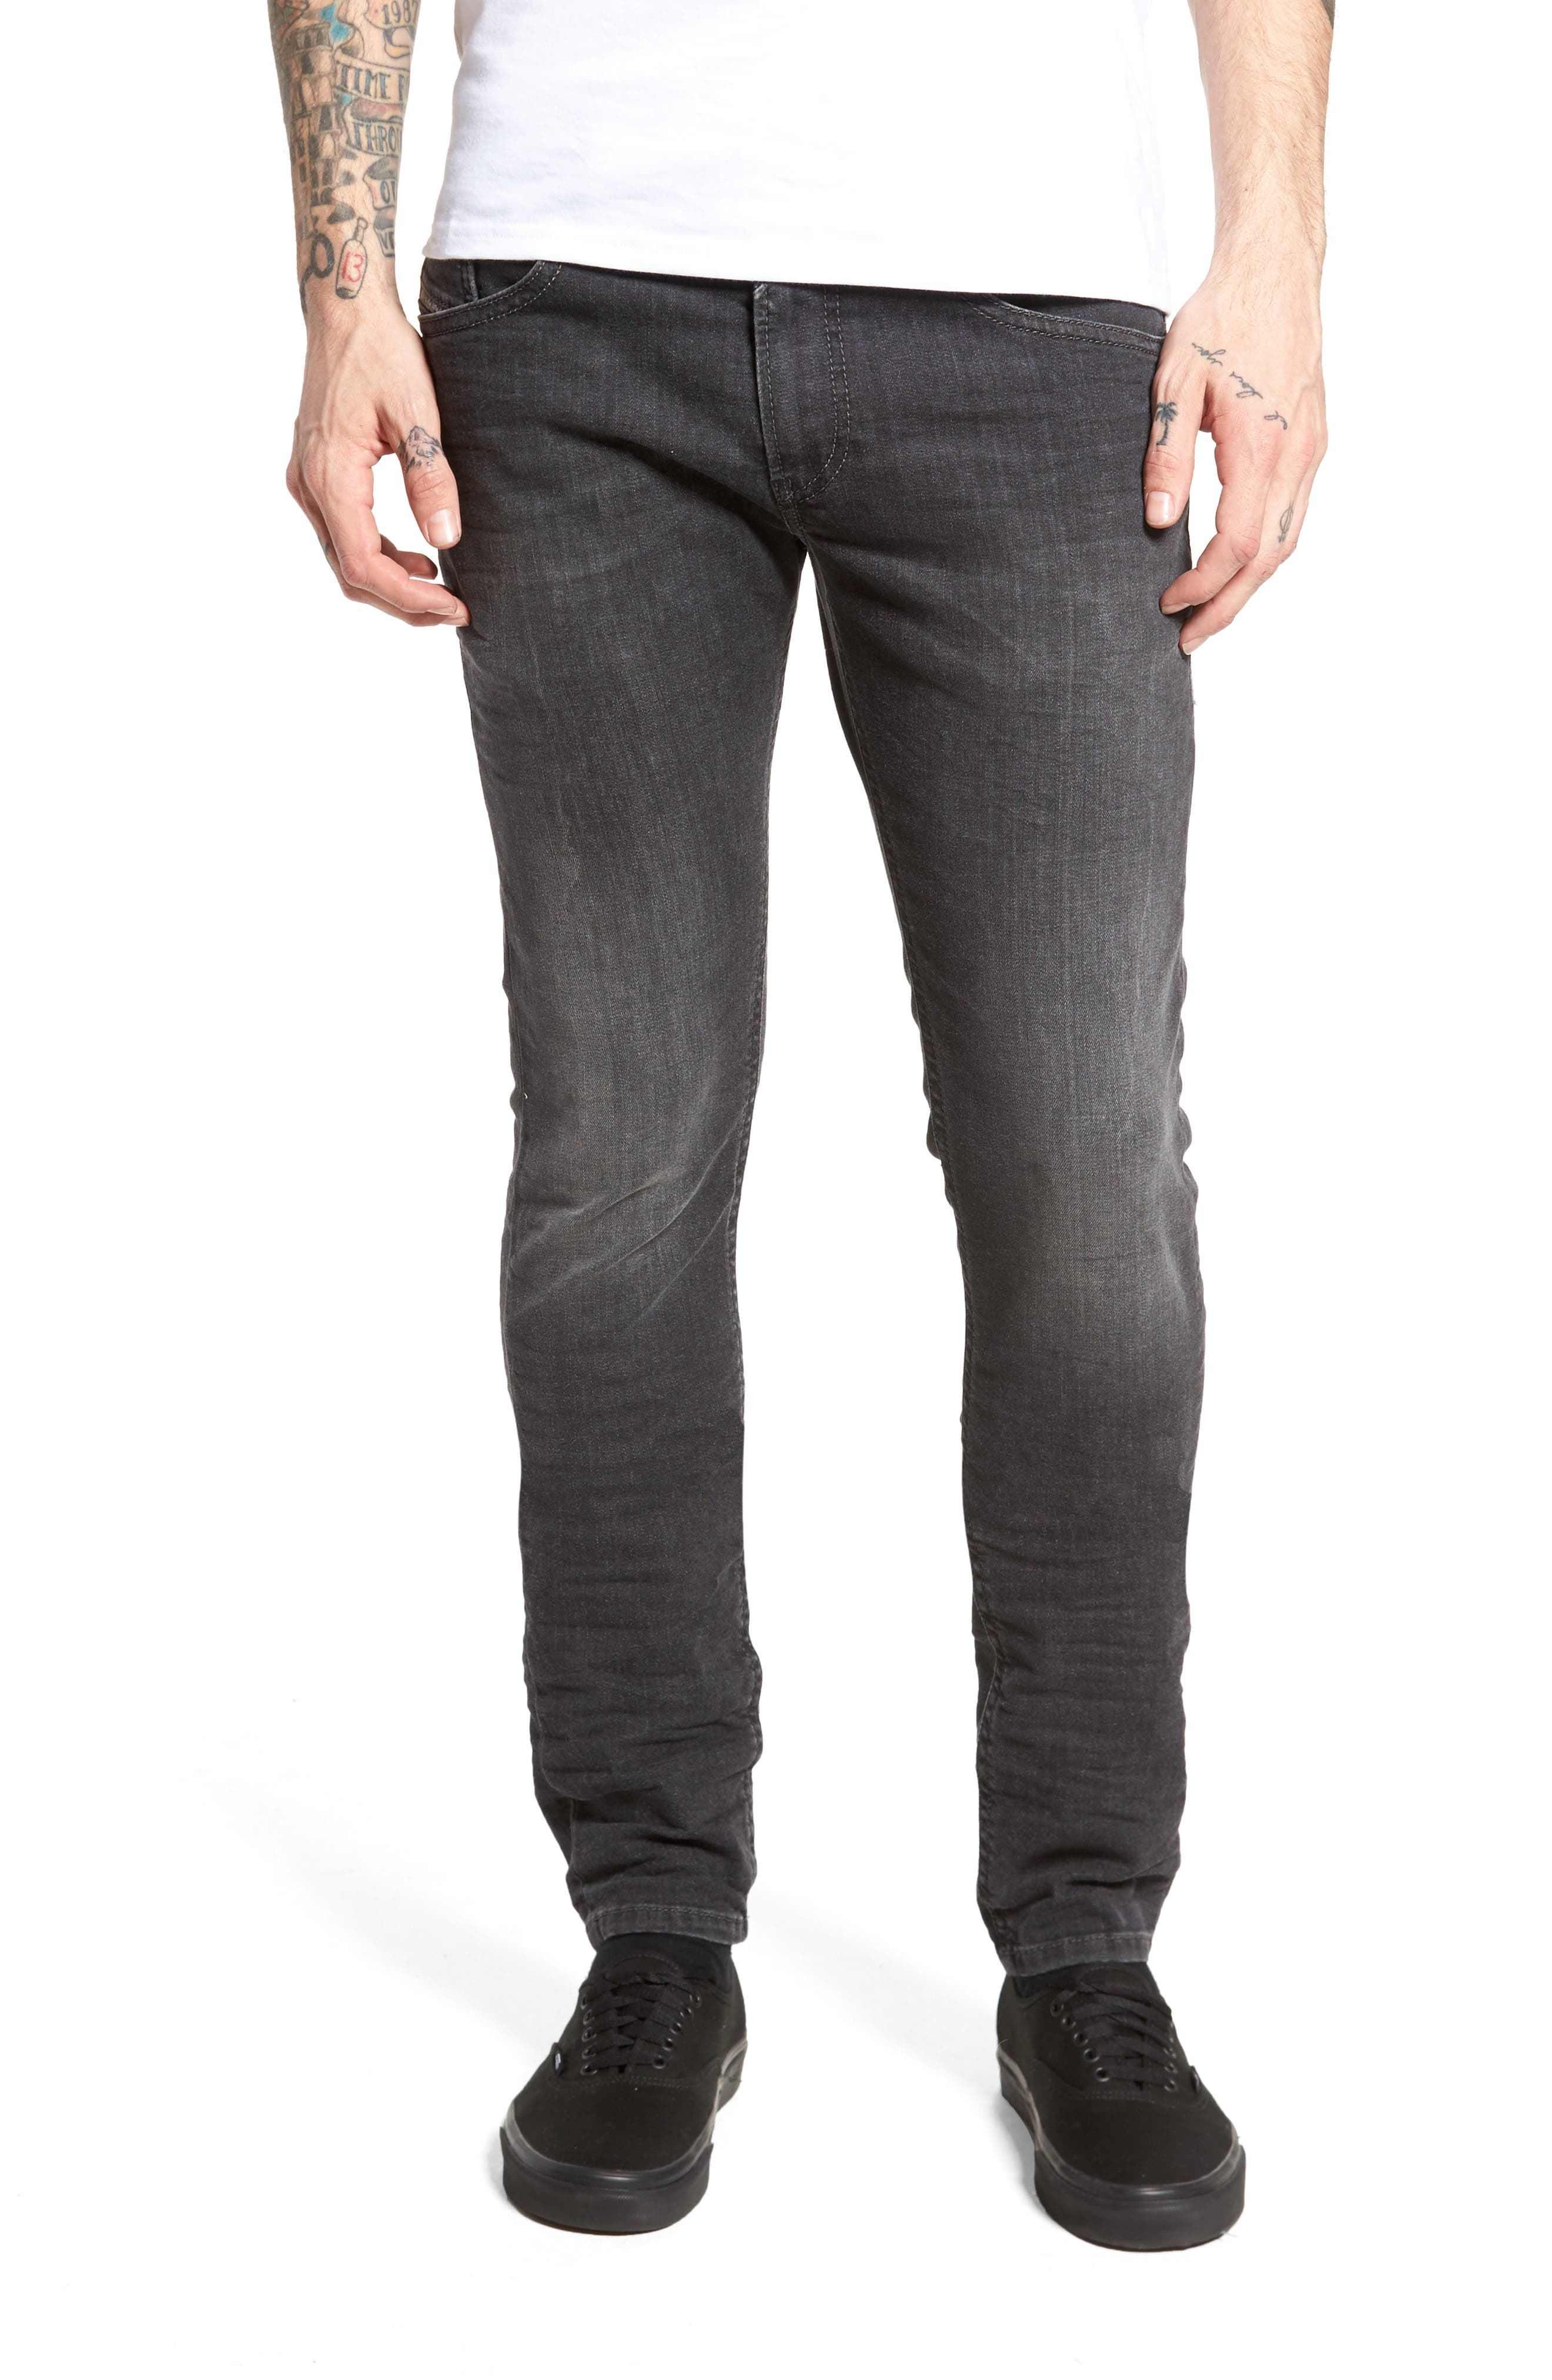 Thommer Slim Fit Jeans,                         Main,                         color, 001